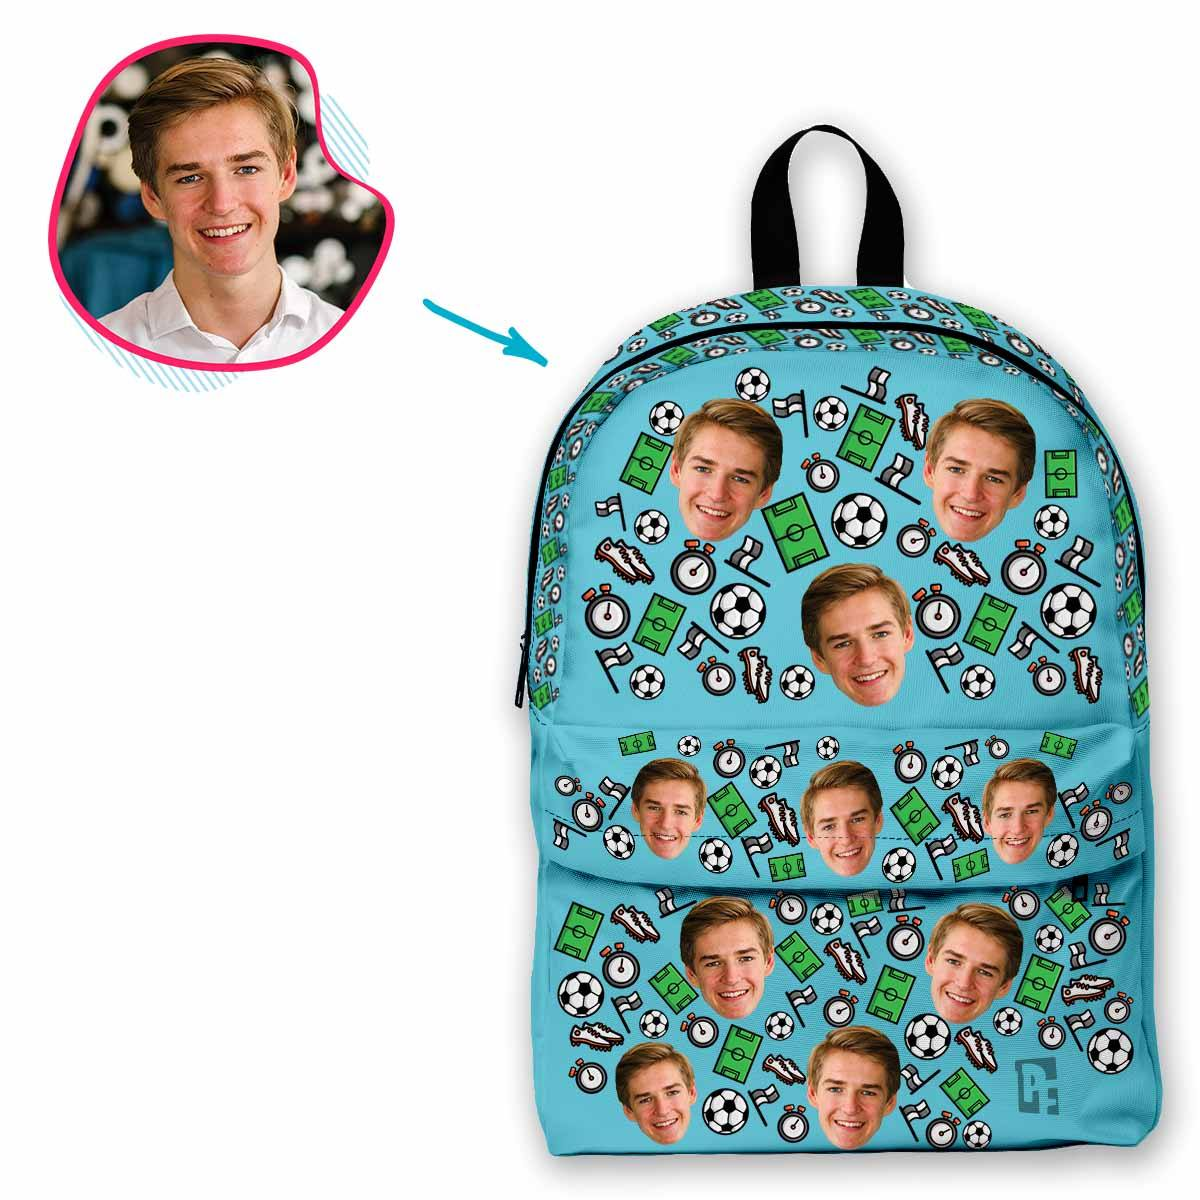 blue Football classic backpack personalized with photo of face printed on it